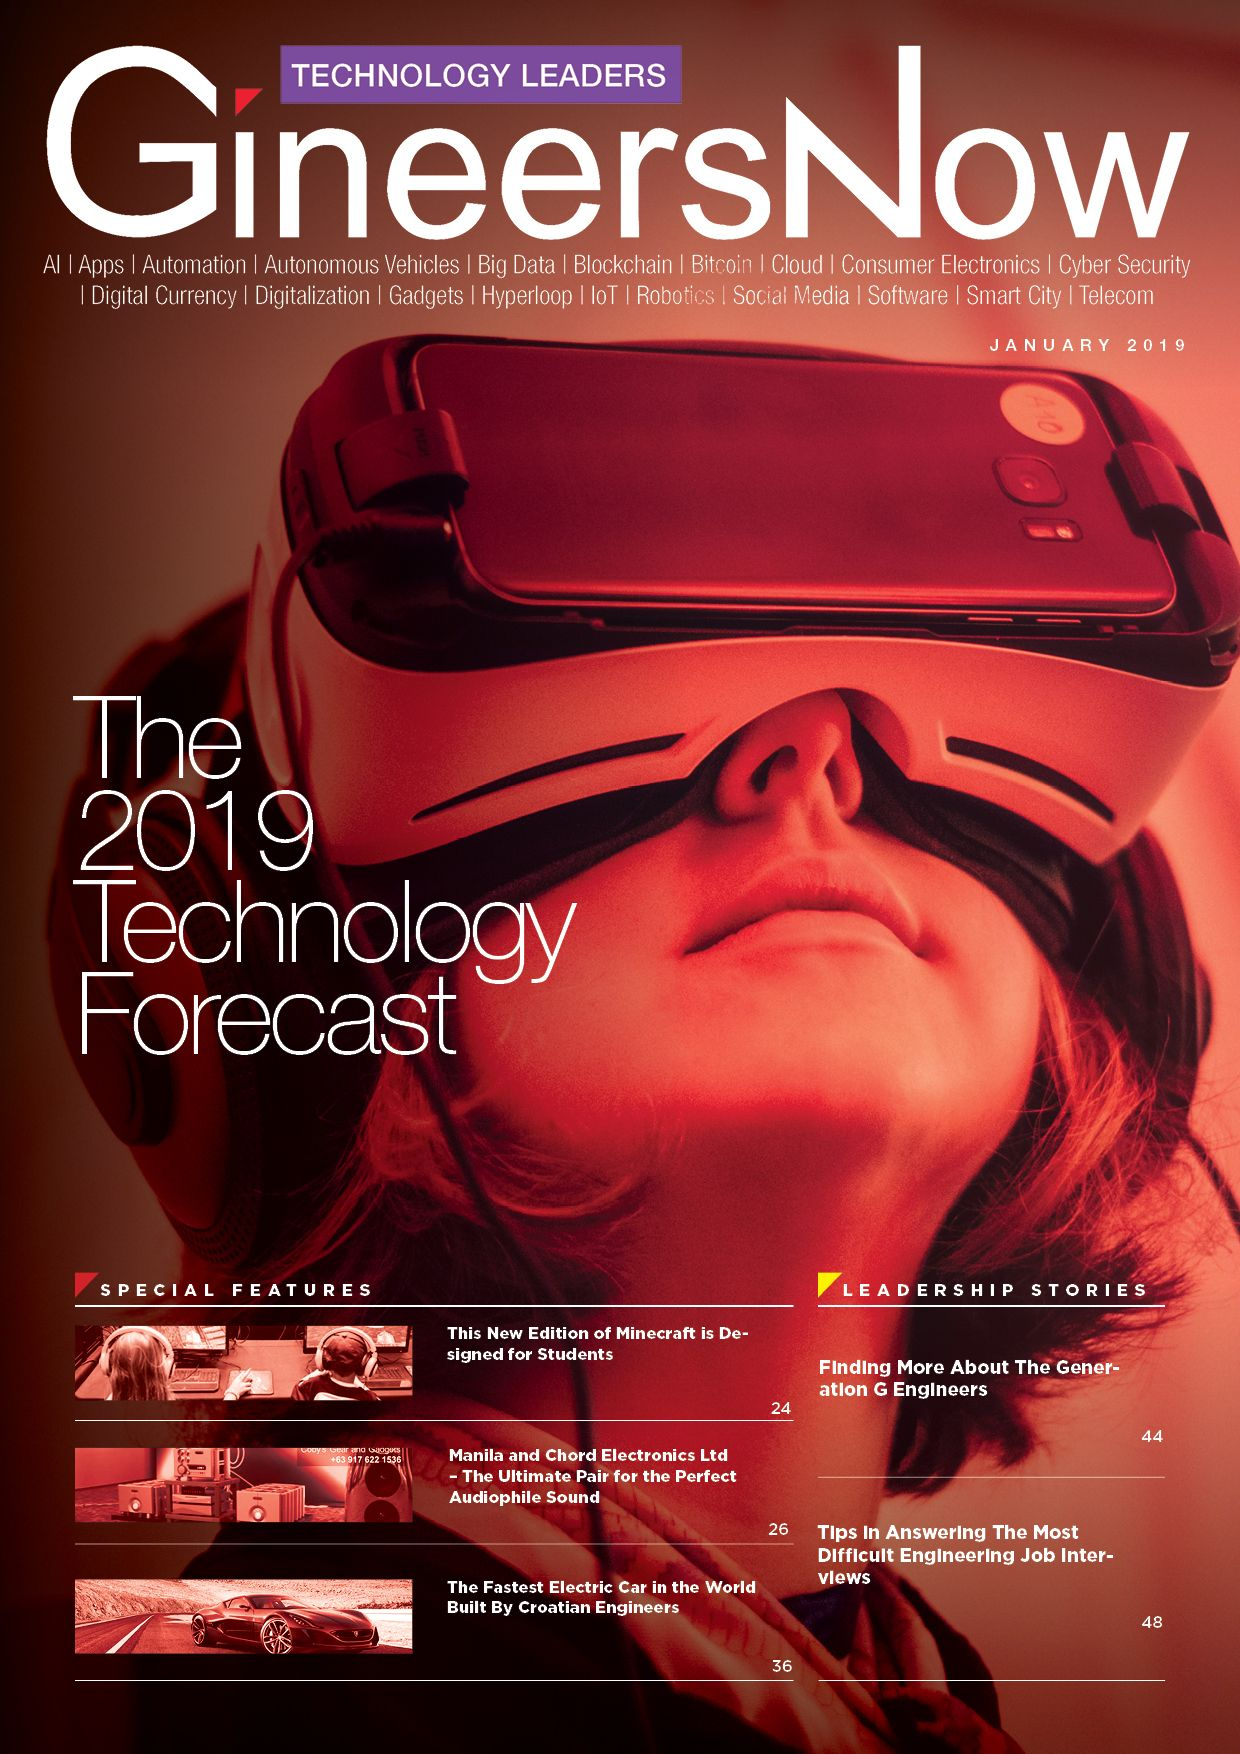 2019 Technology Outlook, Analysis and Forecast